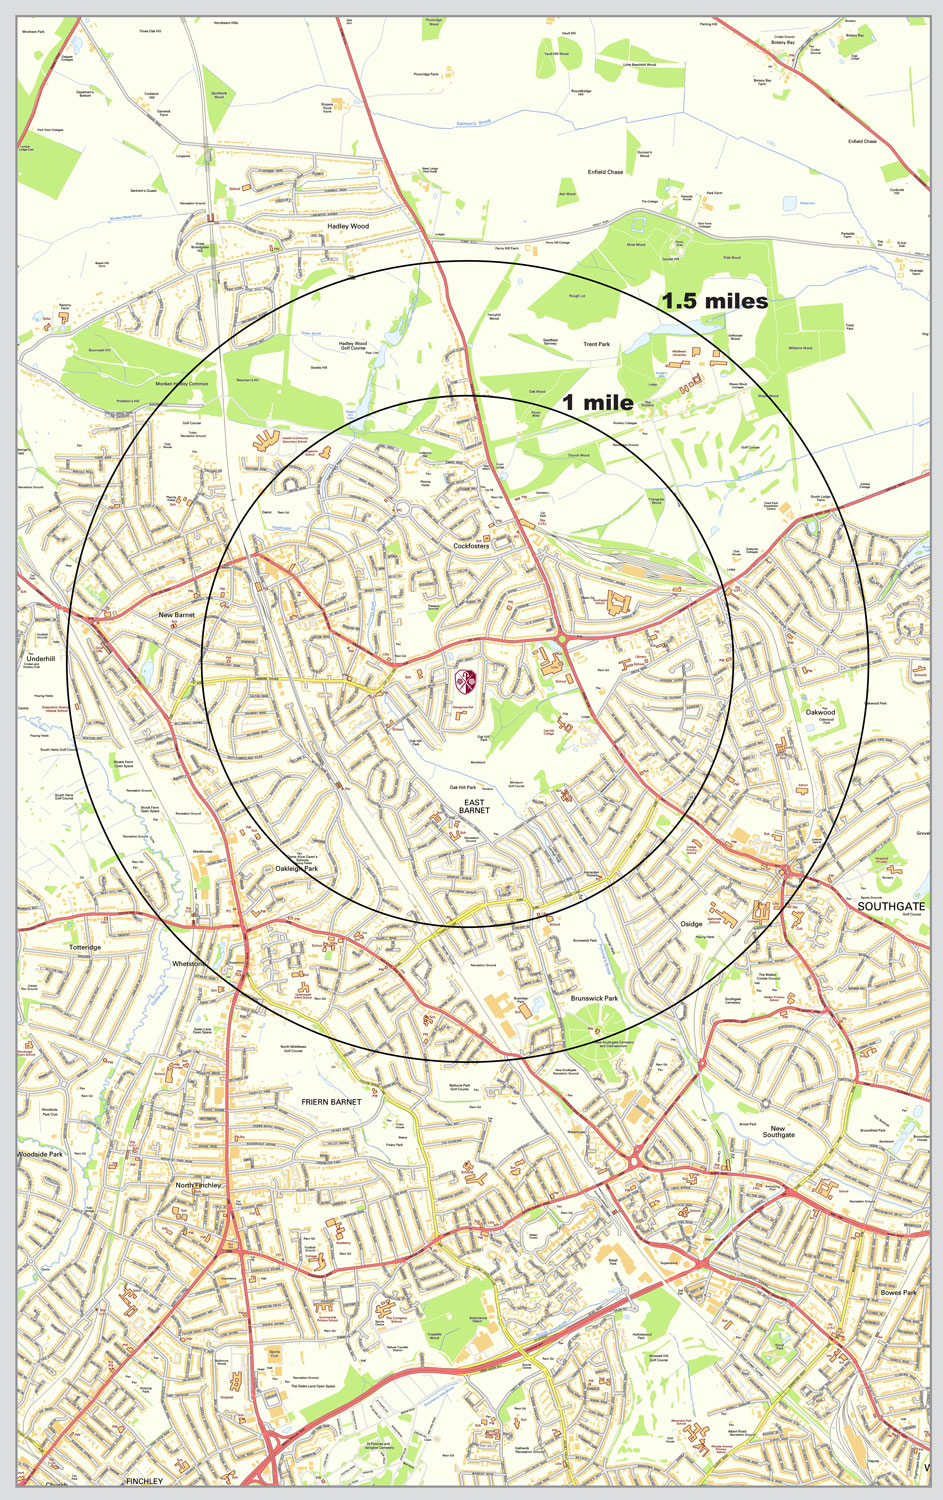 11map to show a mile and a mile and a half from east barnet school